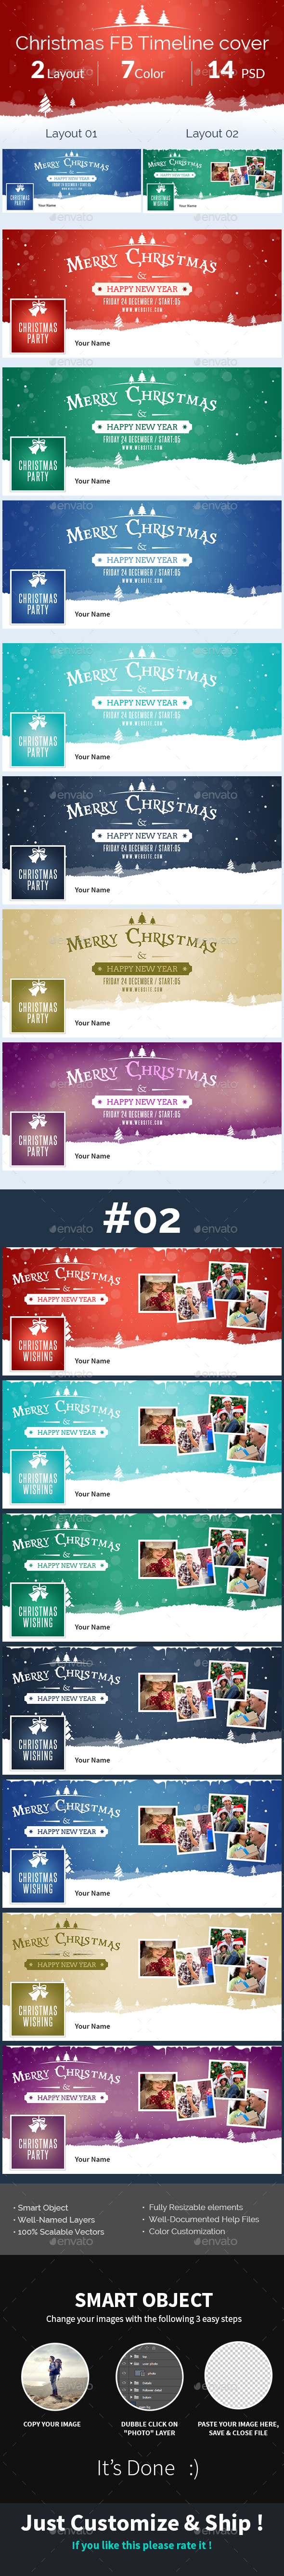 Marry Christmas FB Timeline Cover  - Social Media Web Elements